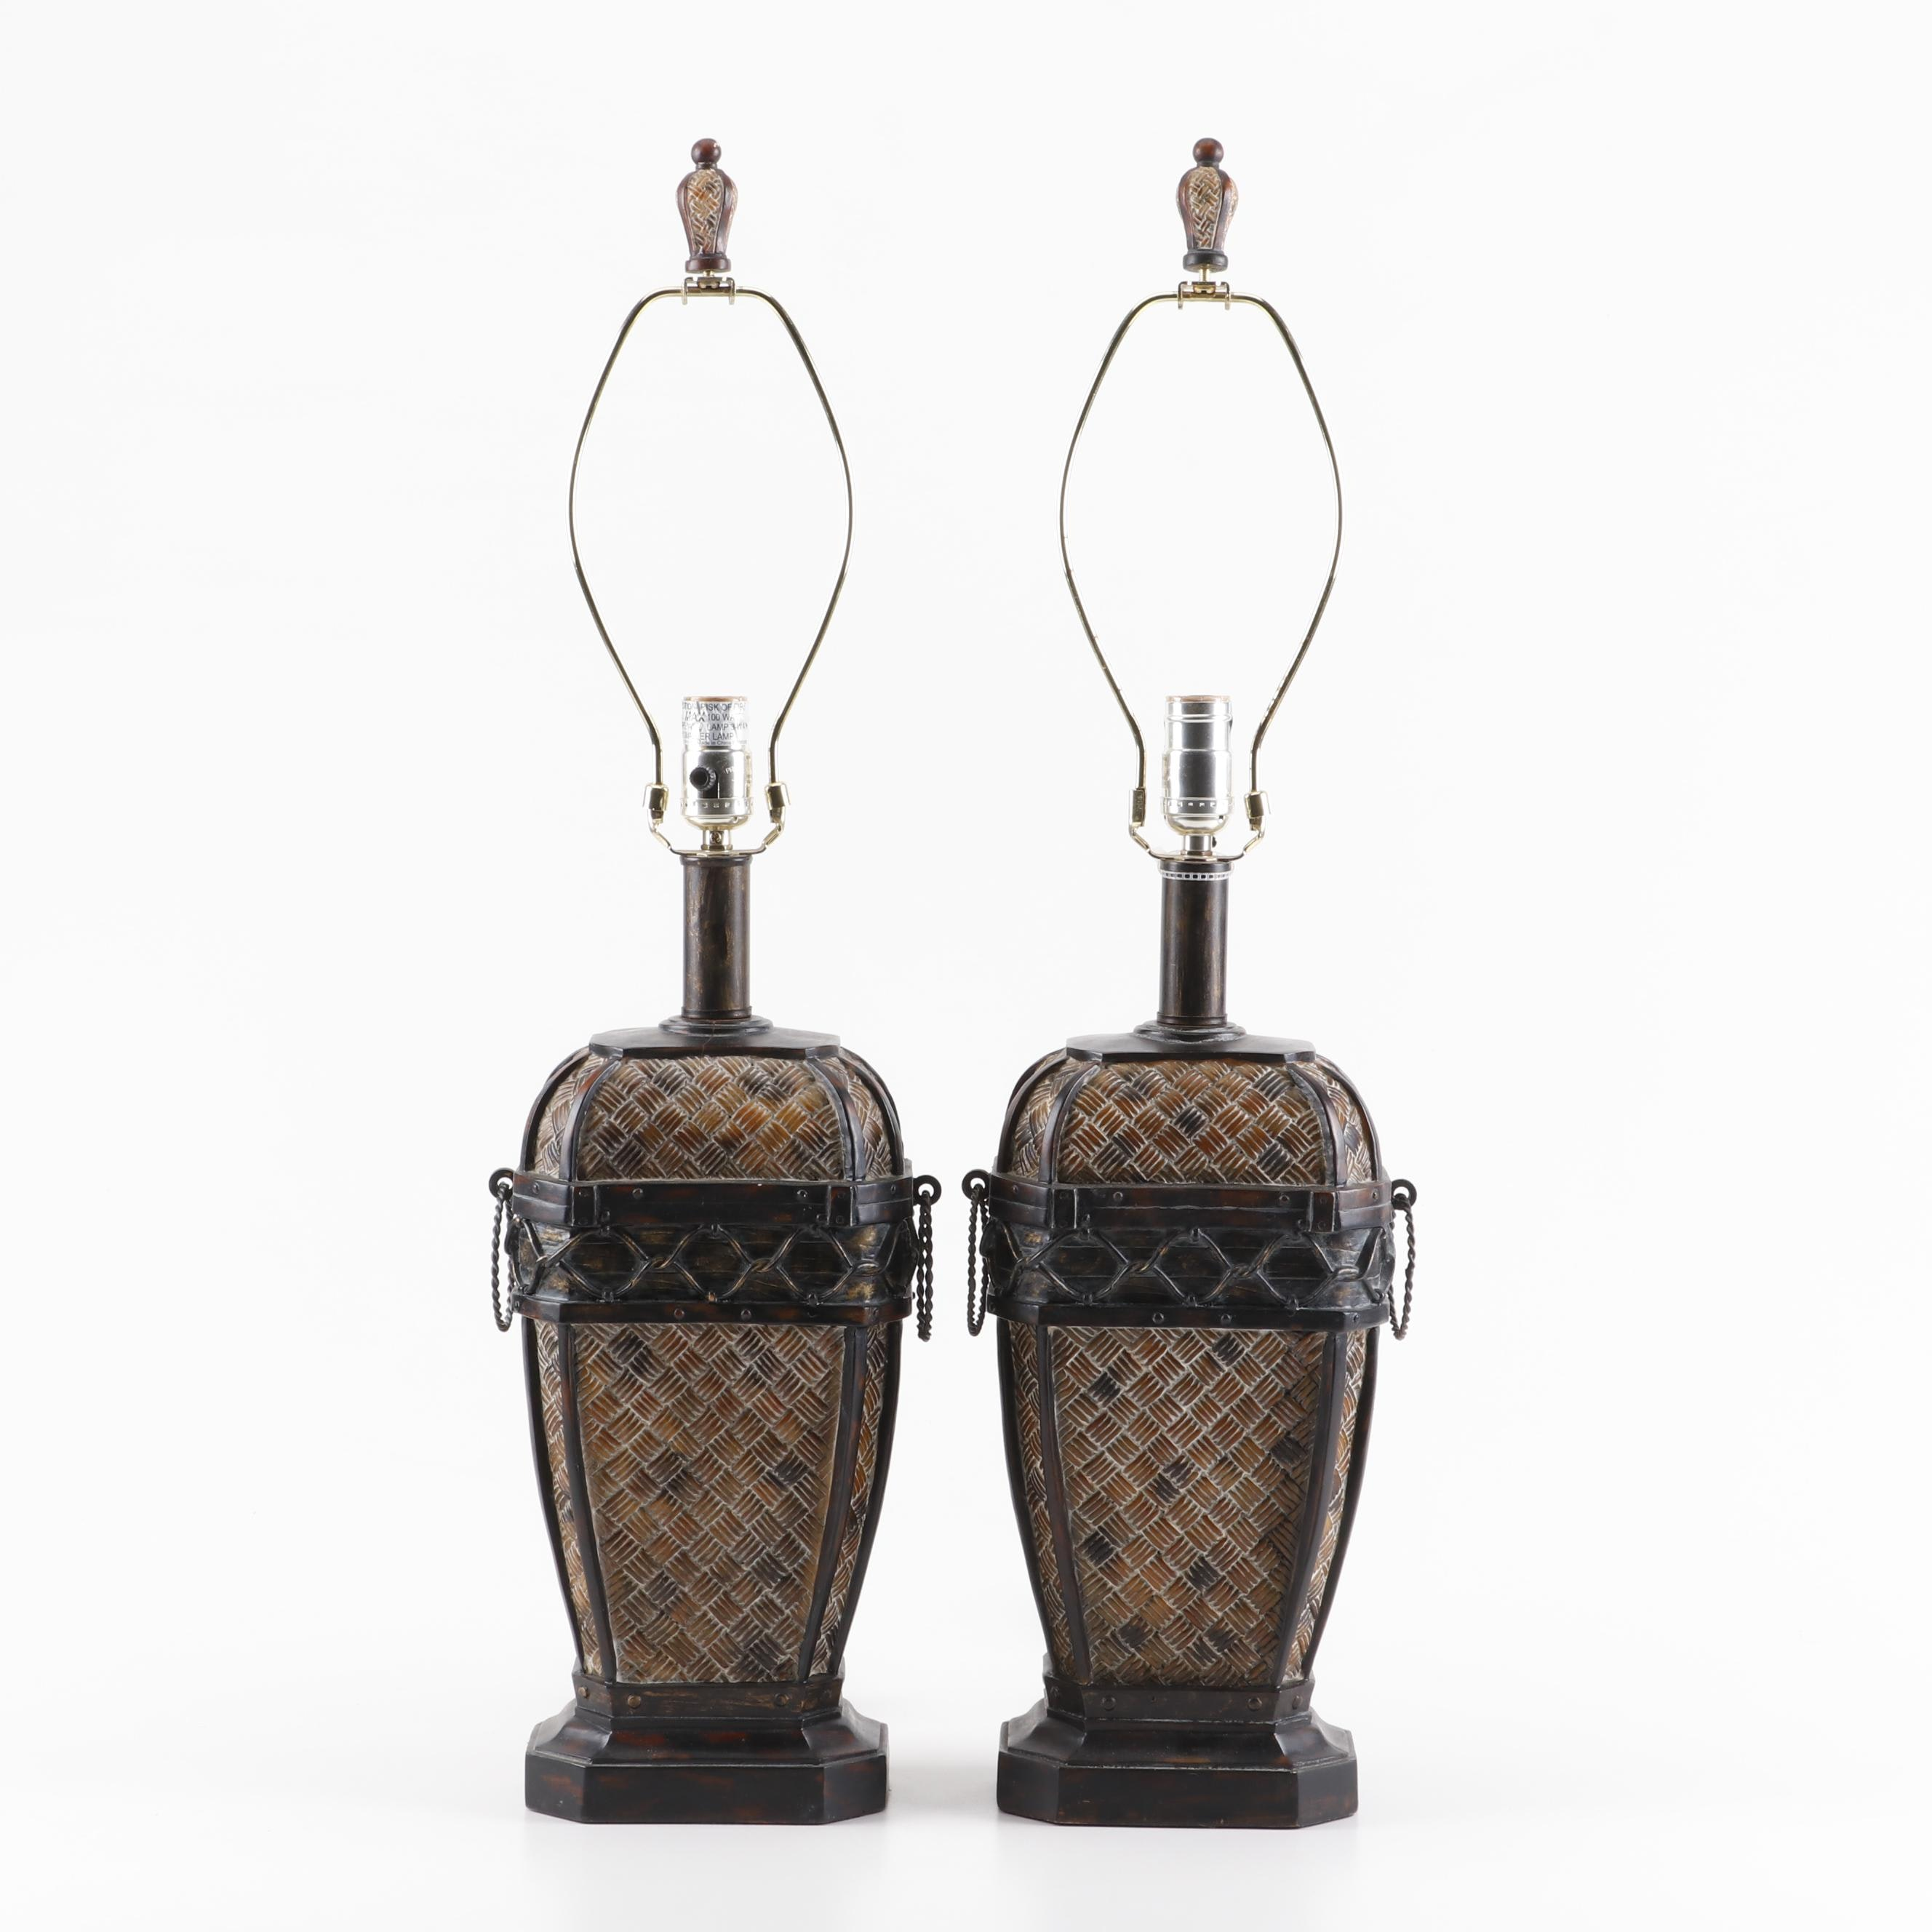 Basket Weave Style Resin Table Lamps, Contemporary